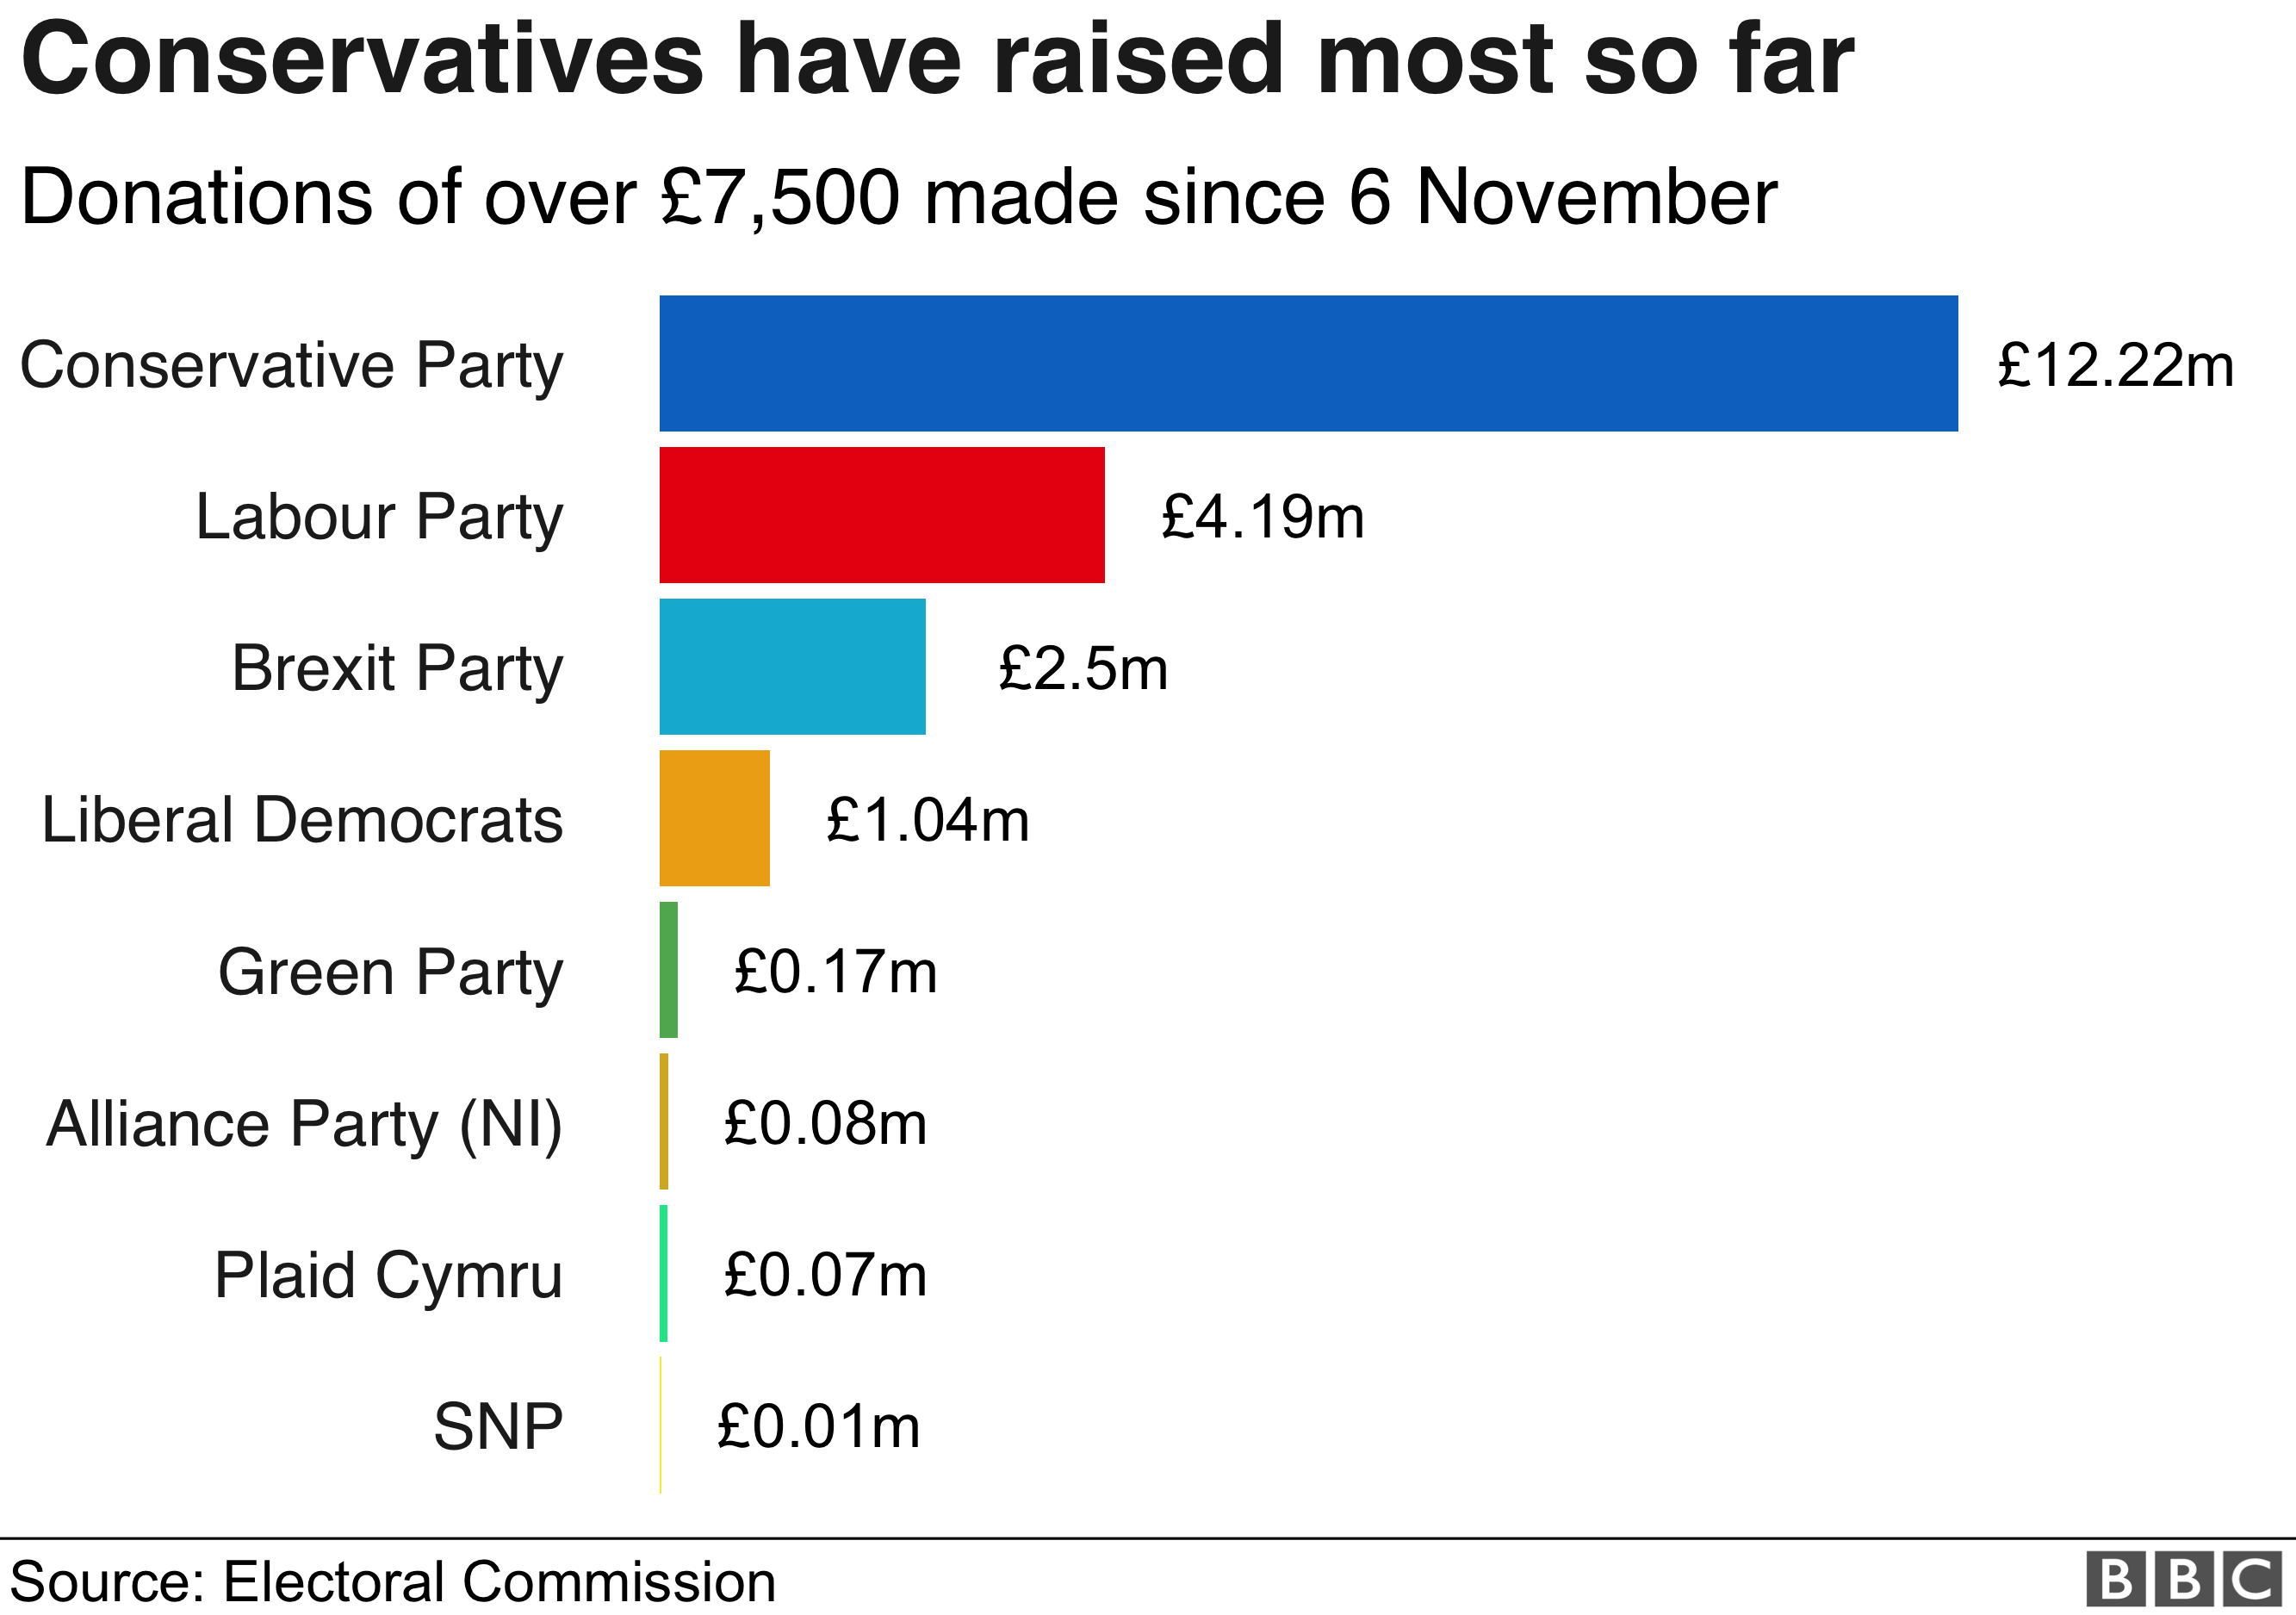 Donations to main parties - Conservatives top with £12.22m